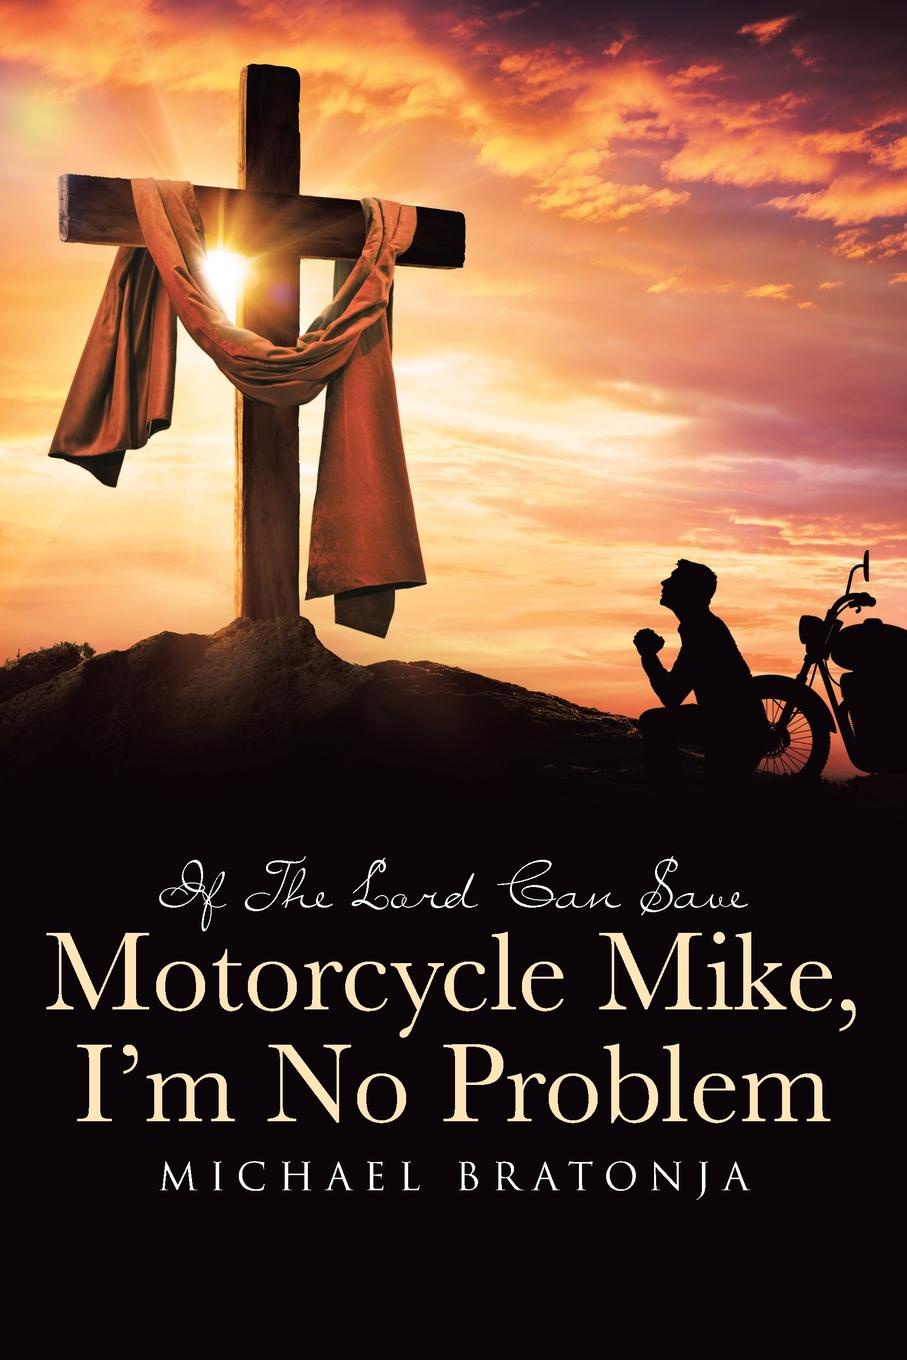 Michael Bratonja If The Lord Can Save Motorcycle Mike, I'm No Problem edison mike i have fun everywhere i go